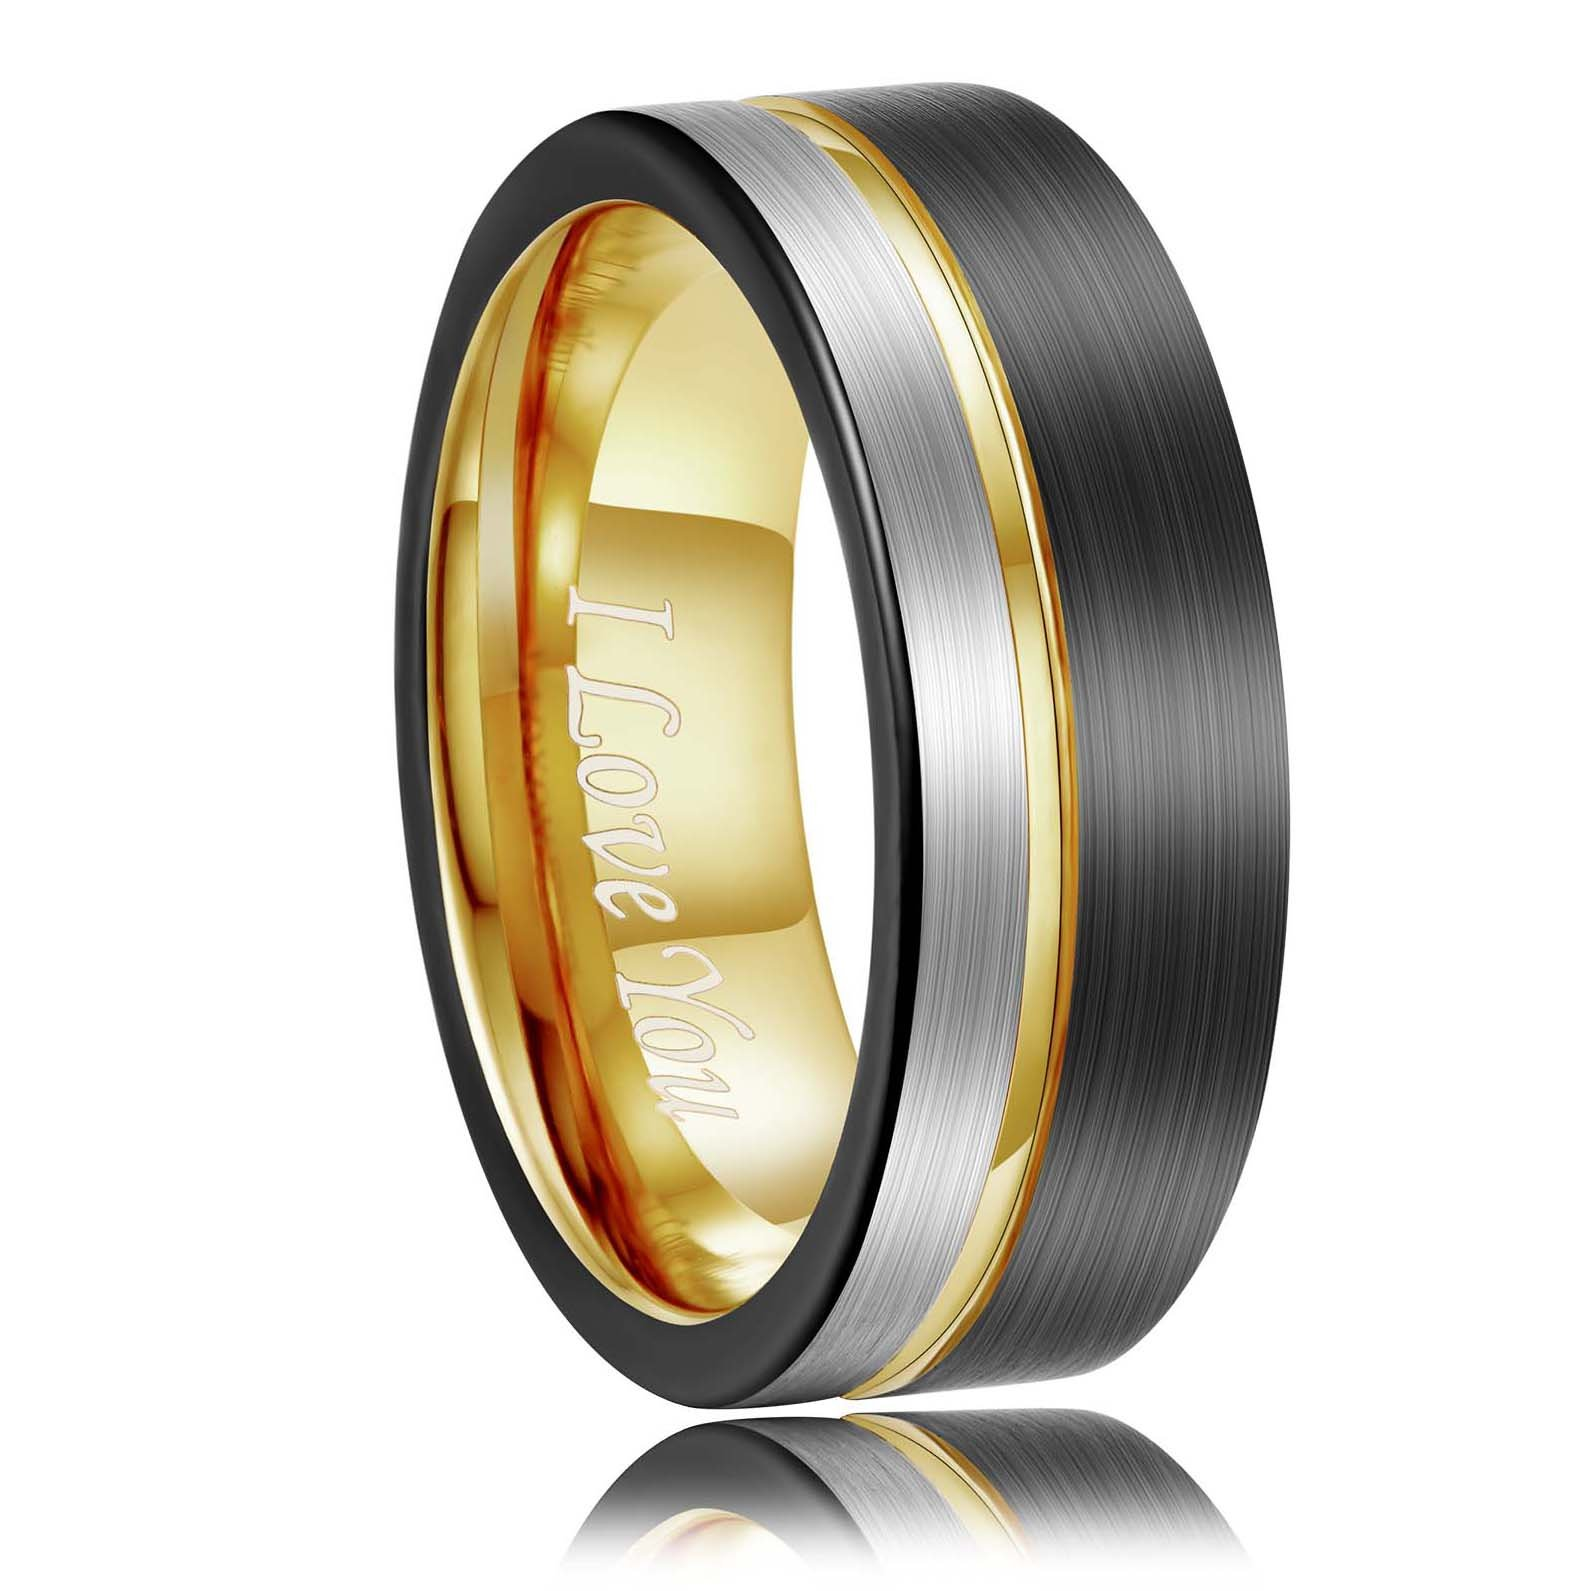 Tungsten Carbide Wedding Band 8mm Gold Line Ring Black and Silver Brushed Comfort Fit Grooved Mens Engagement Bands for Men Women Womens Promise Polished Rings Unisex Engagment Jewerly Gift Size 7